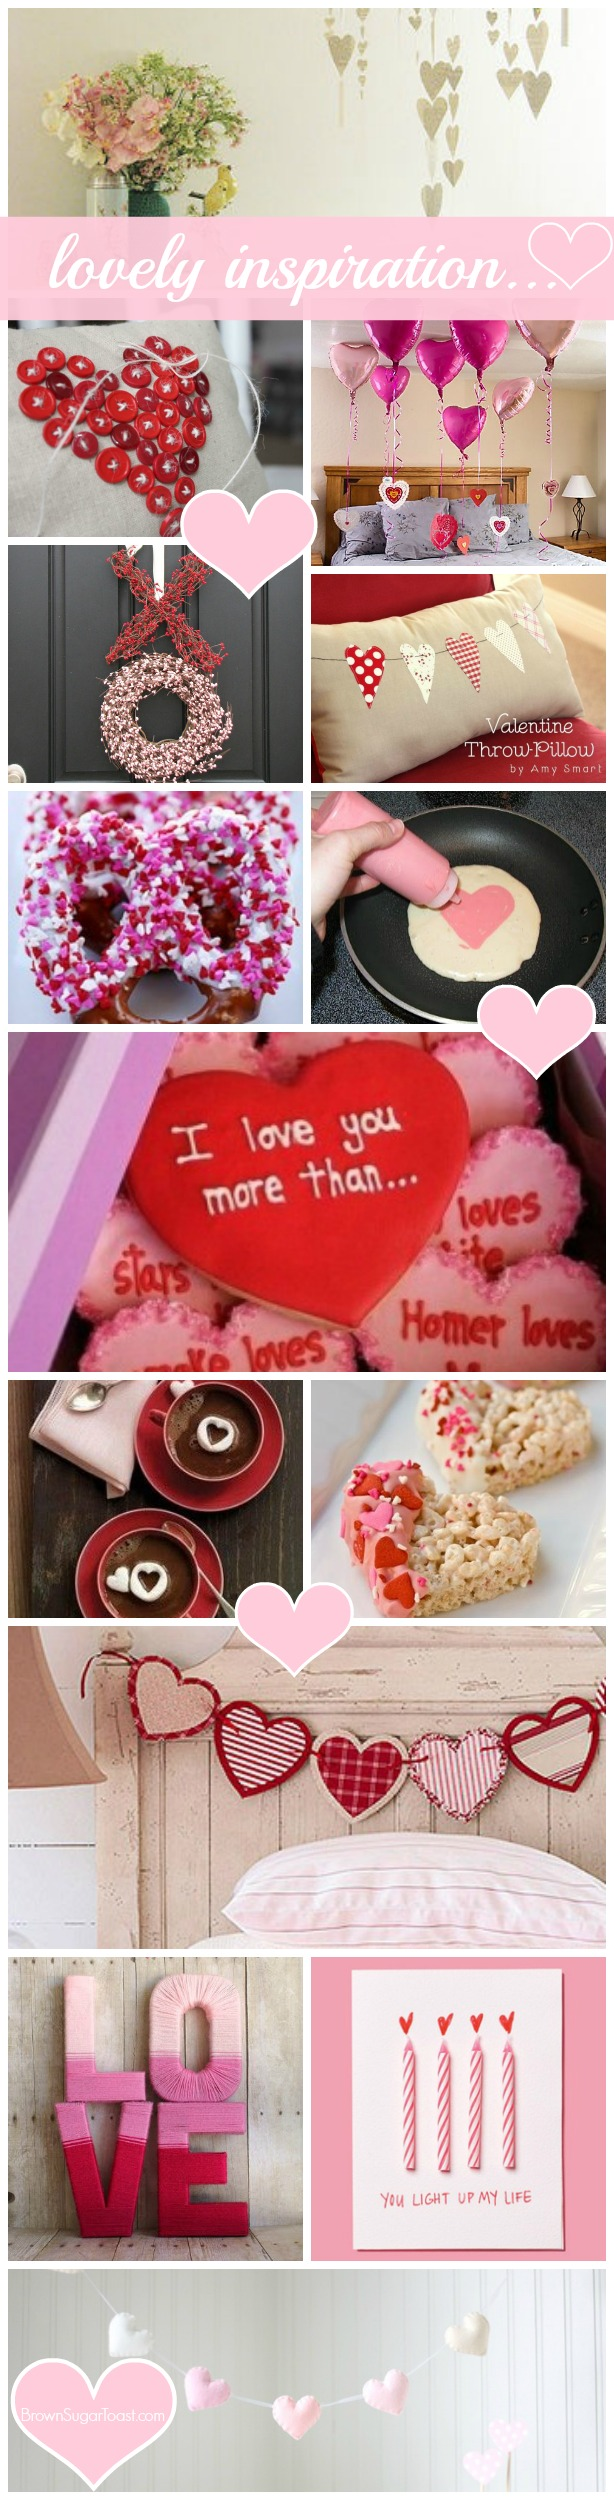 Lovely Valentine Inspiration from BrownSugarToast.com